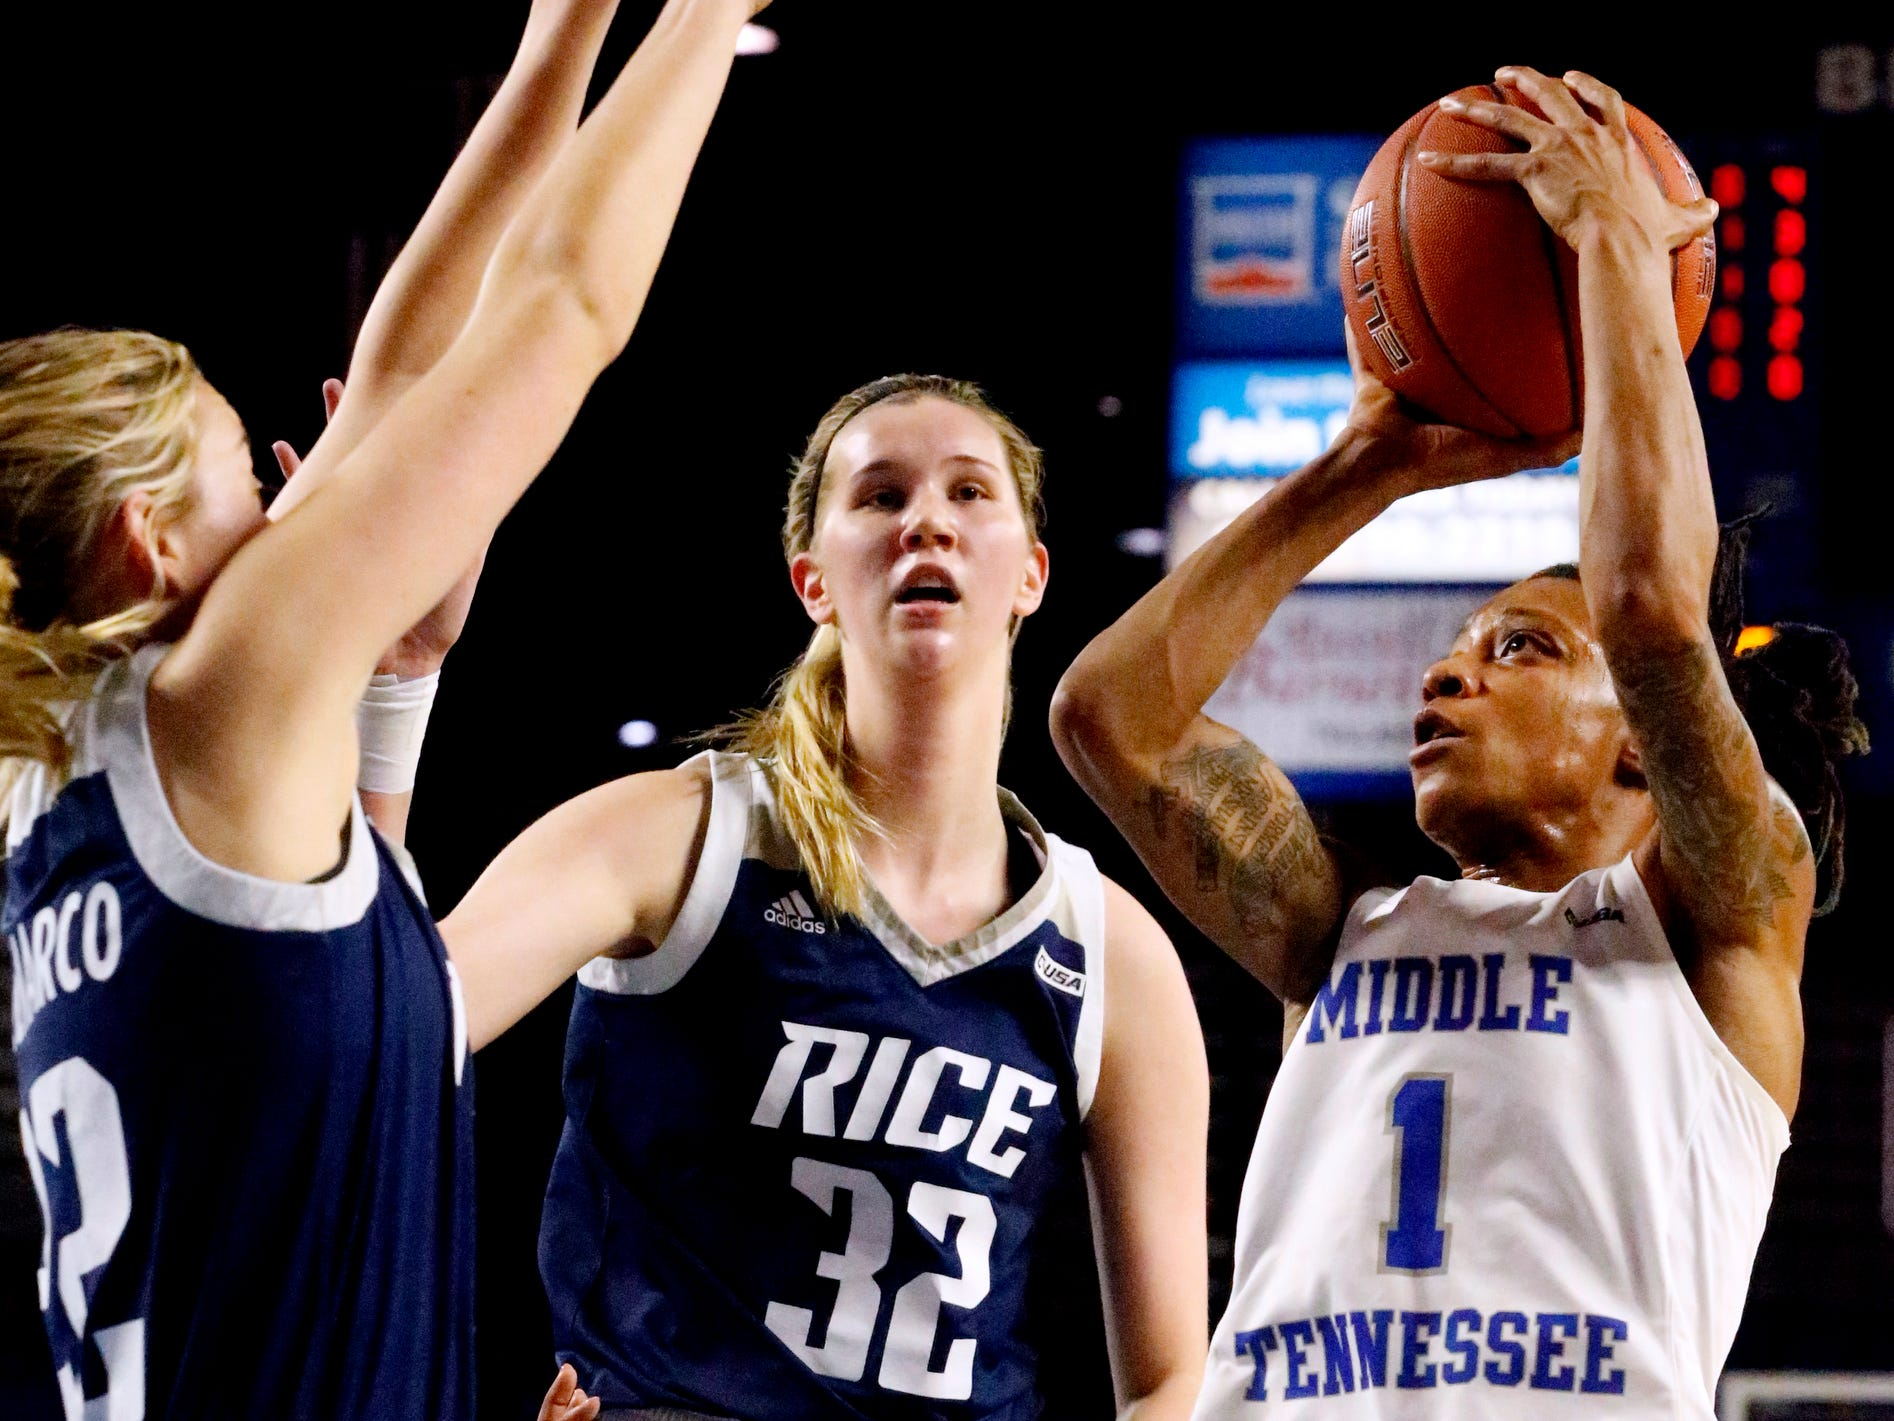 MTSU's guard A'Queen Hayes (1) goes u for a shot as Rice's guard/forward Nicole Iademarco (22) guards her and Rice's center Nancy Mulkey (32) looks on Thursday Jan. 24, 2019.